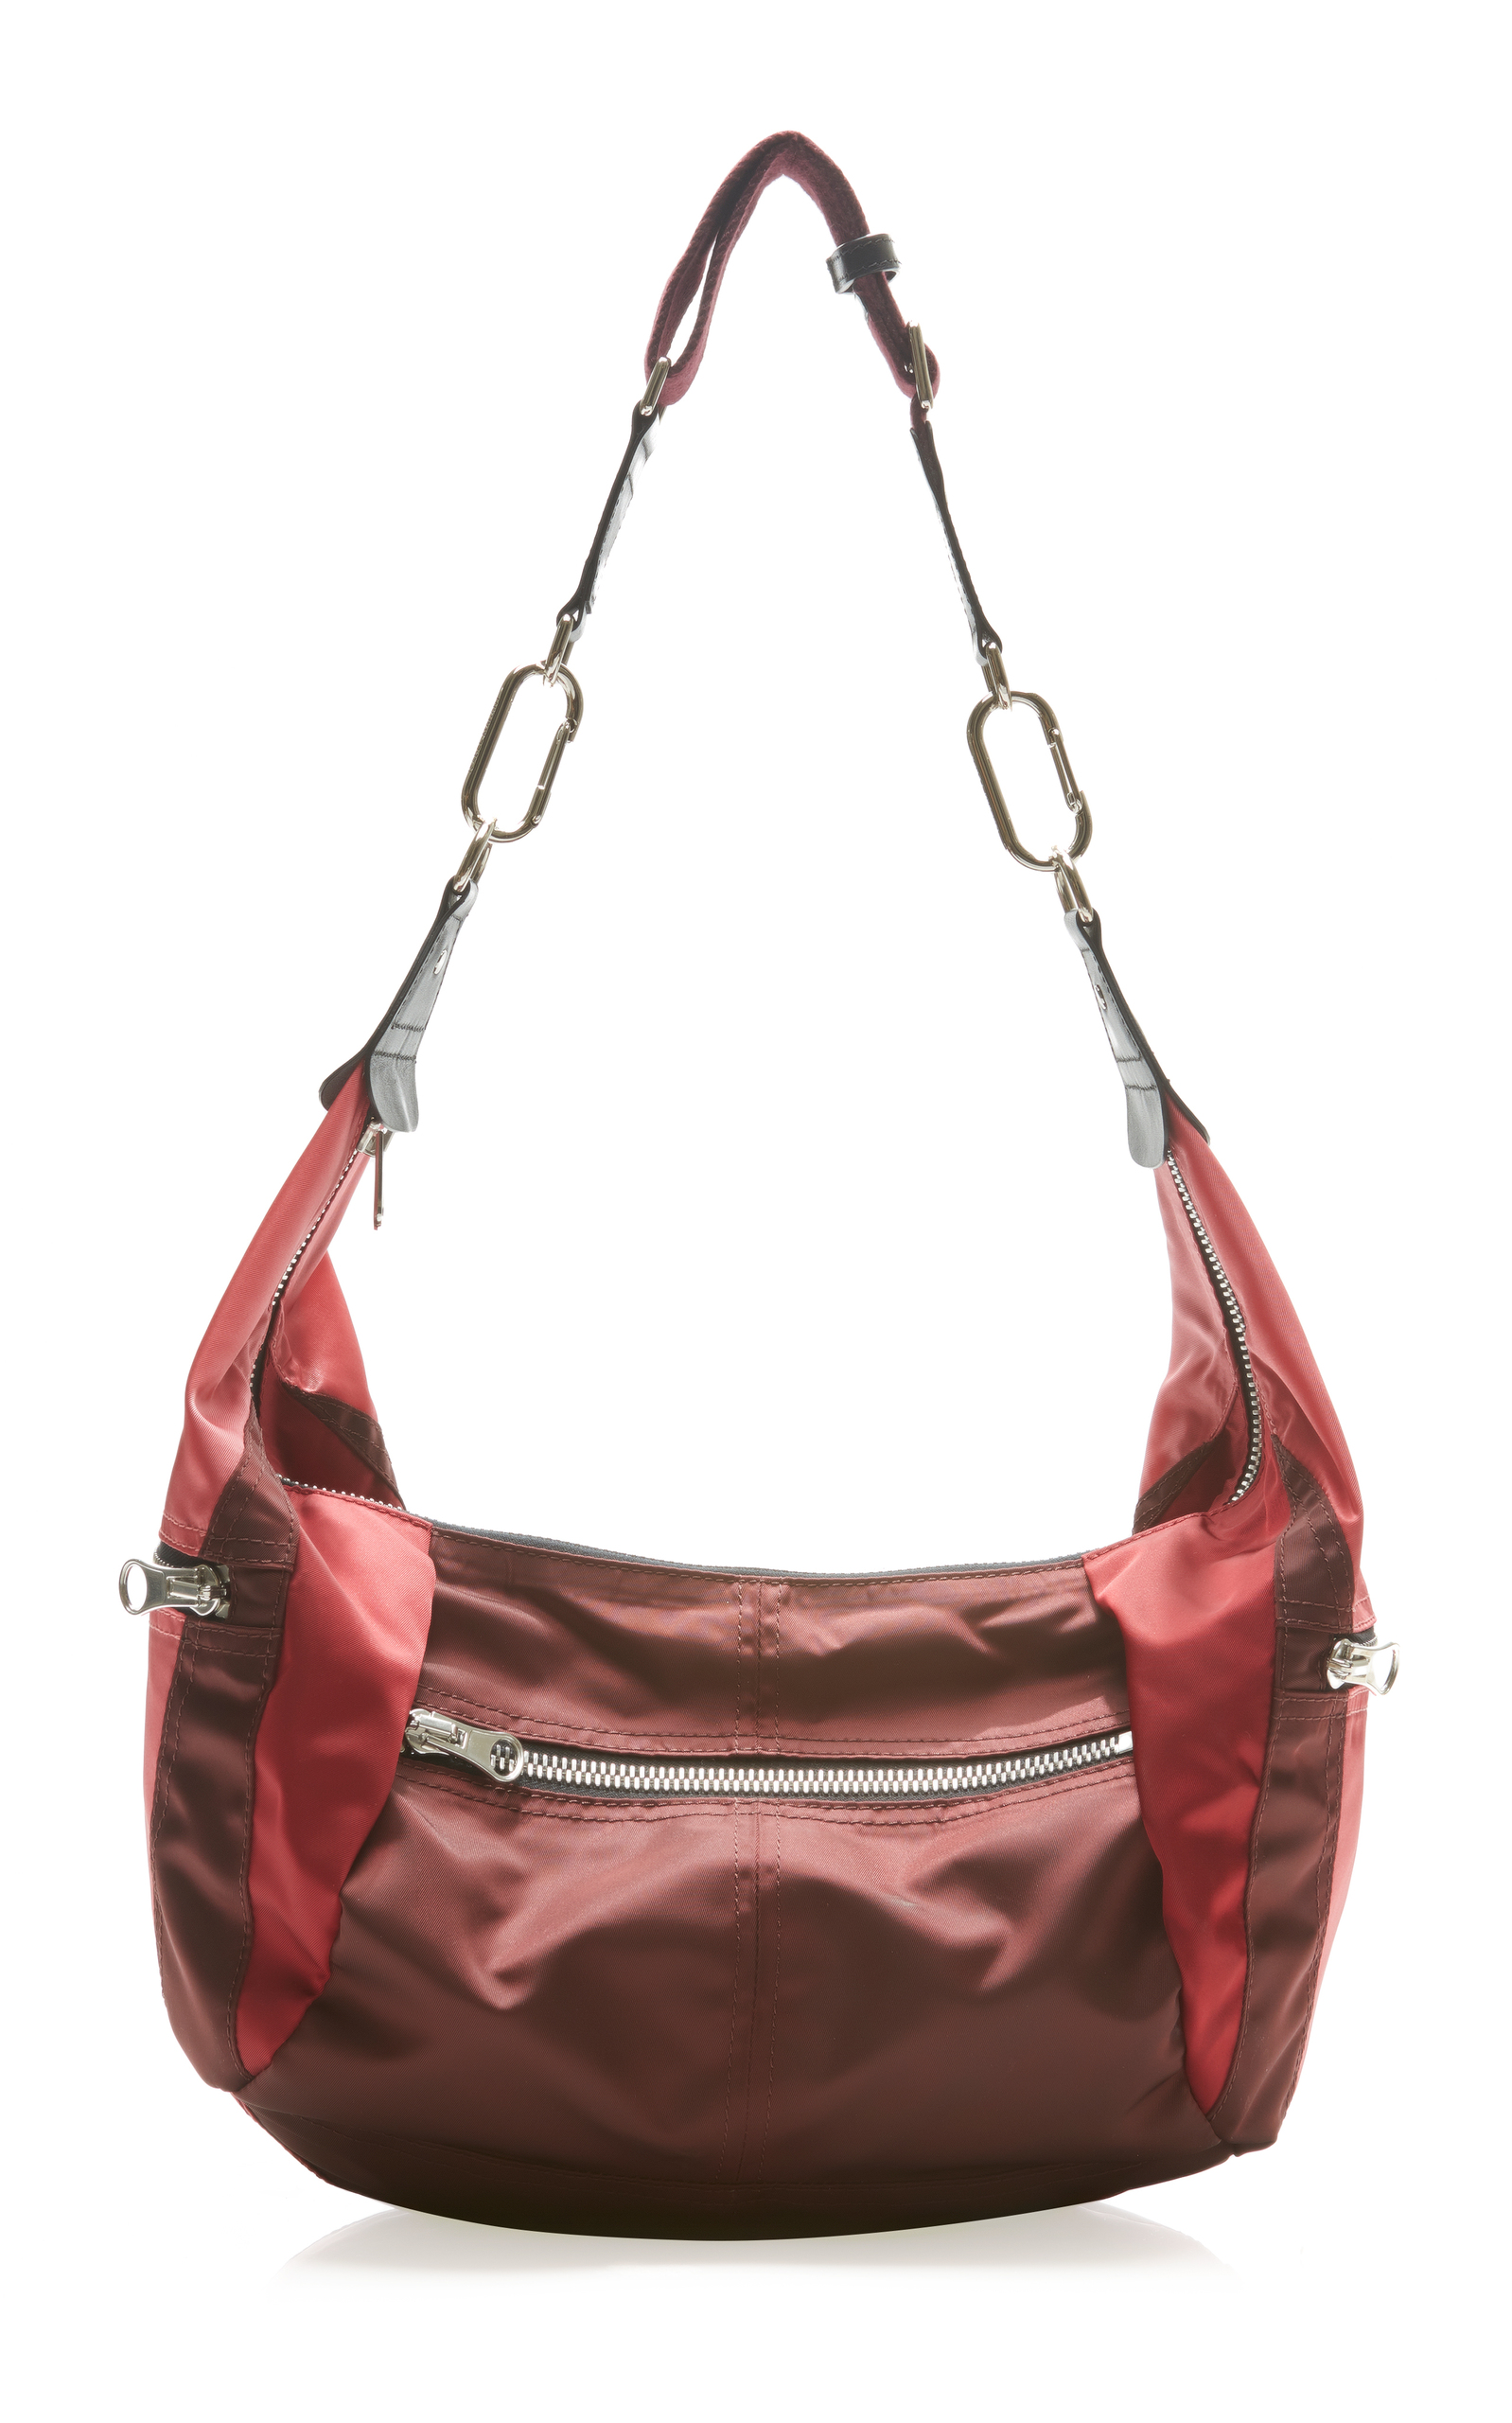 Nilwey technical shoulder bag Isabel Marant 7YUDg